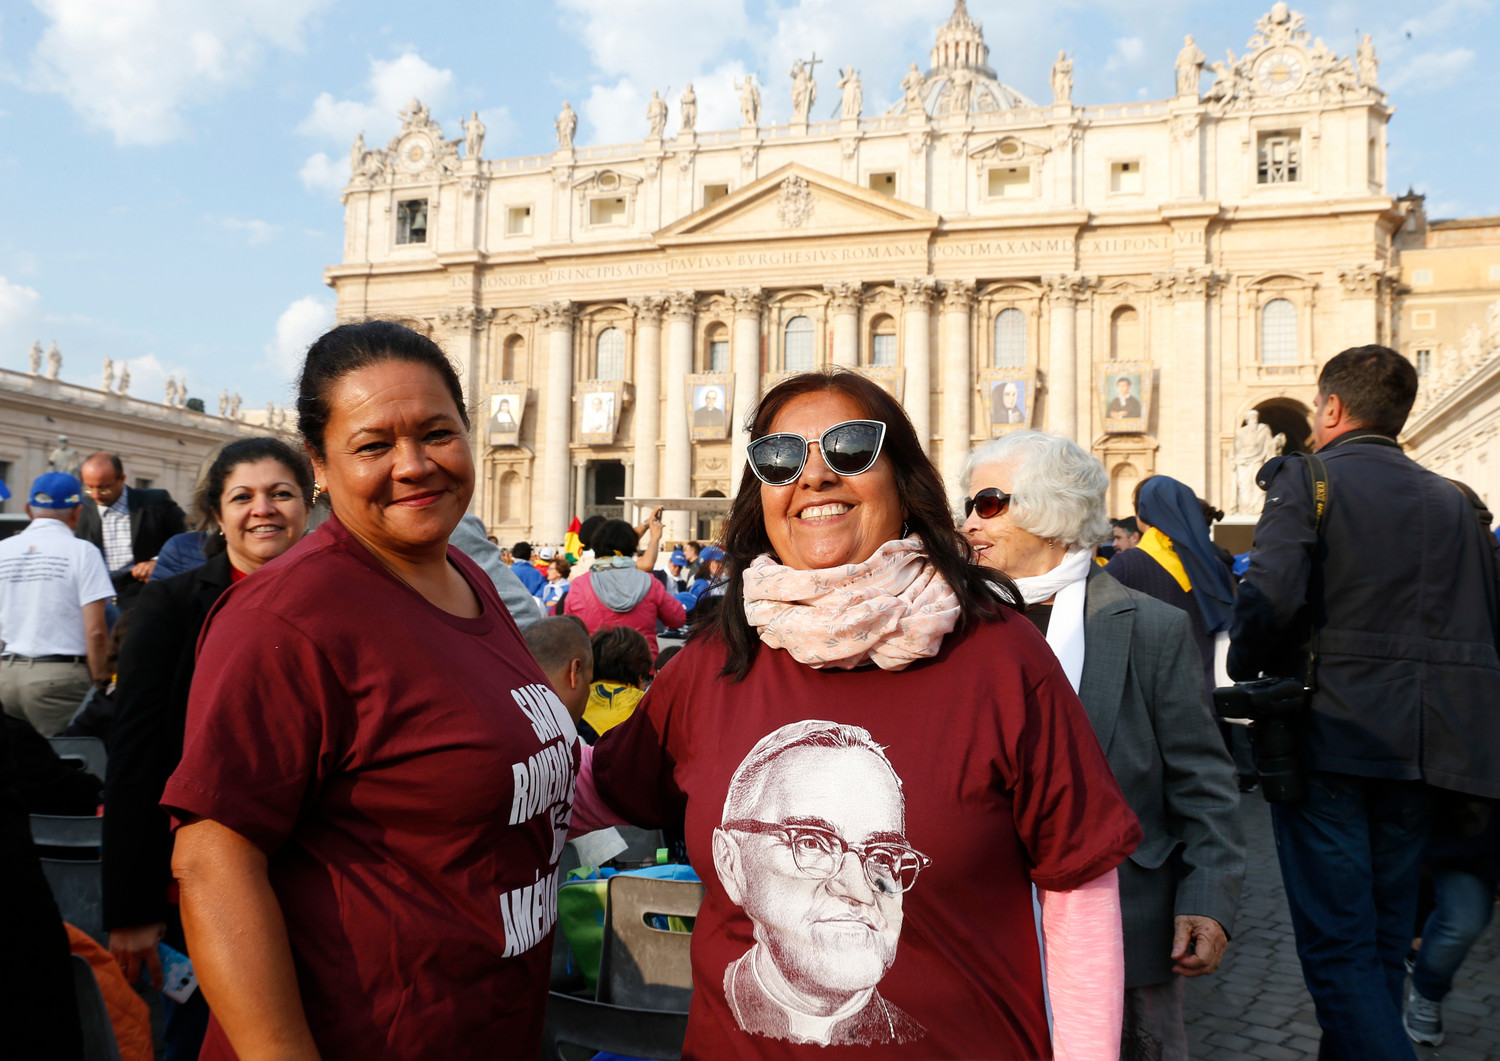 Pope Francis celebrates the canonization Mass for seven new saints in St. Peter's Square at the Vatican Oct. 14. Among the new saints are St. Paul VI and St. Oscar Romero.